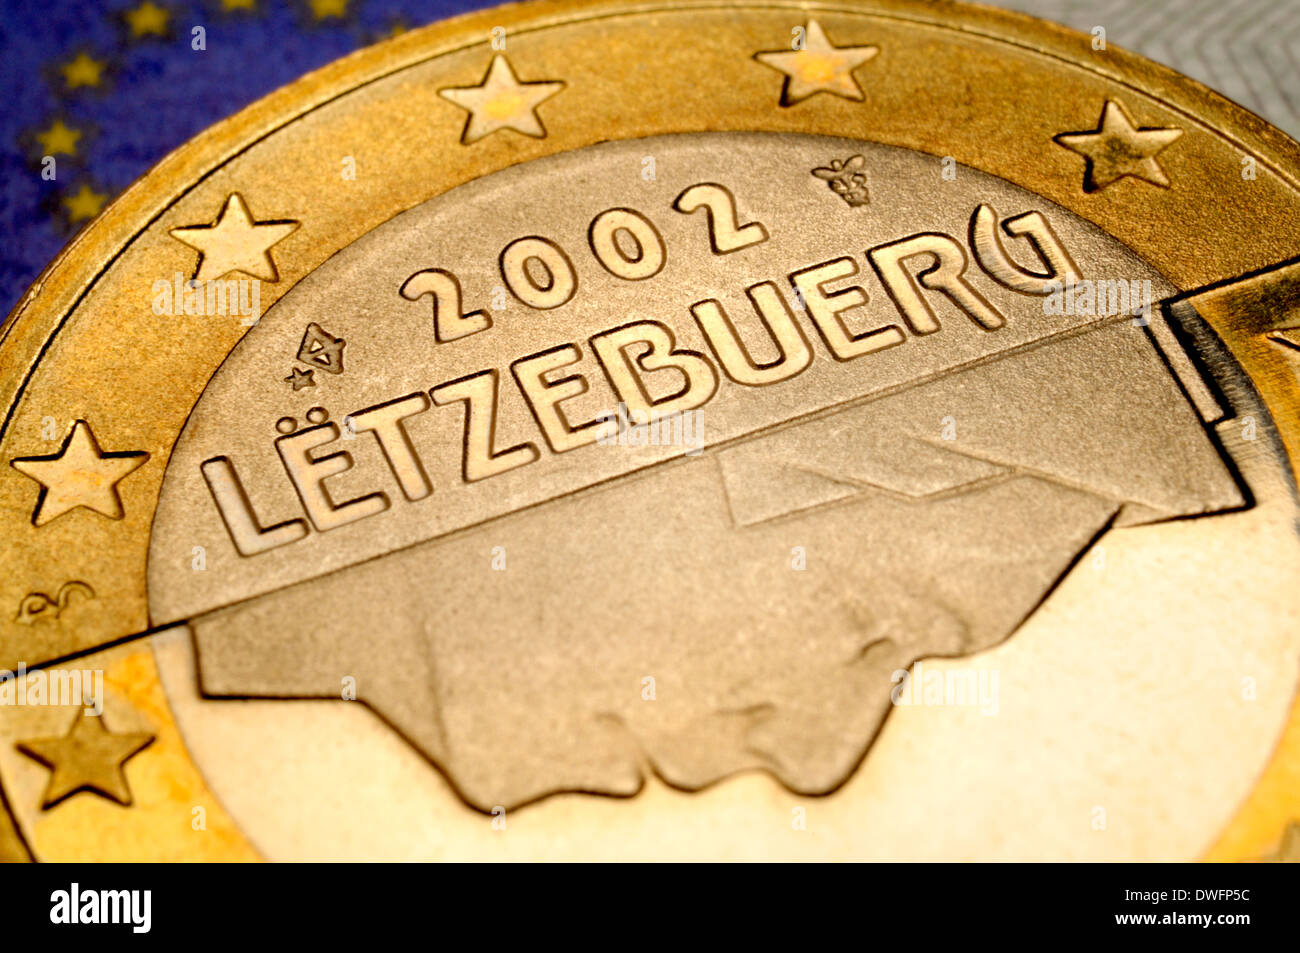 Luxembourg 1 Euro coin on €5 note - Stock Image